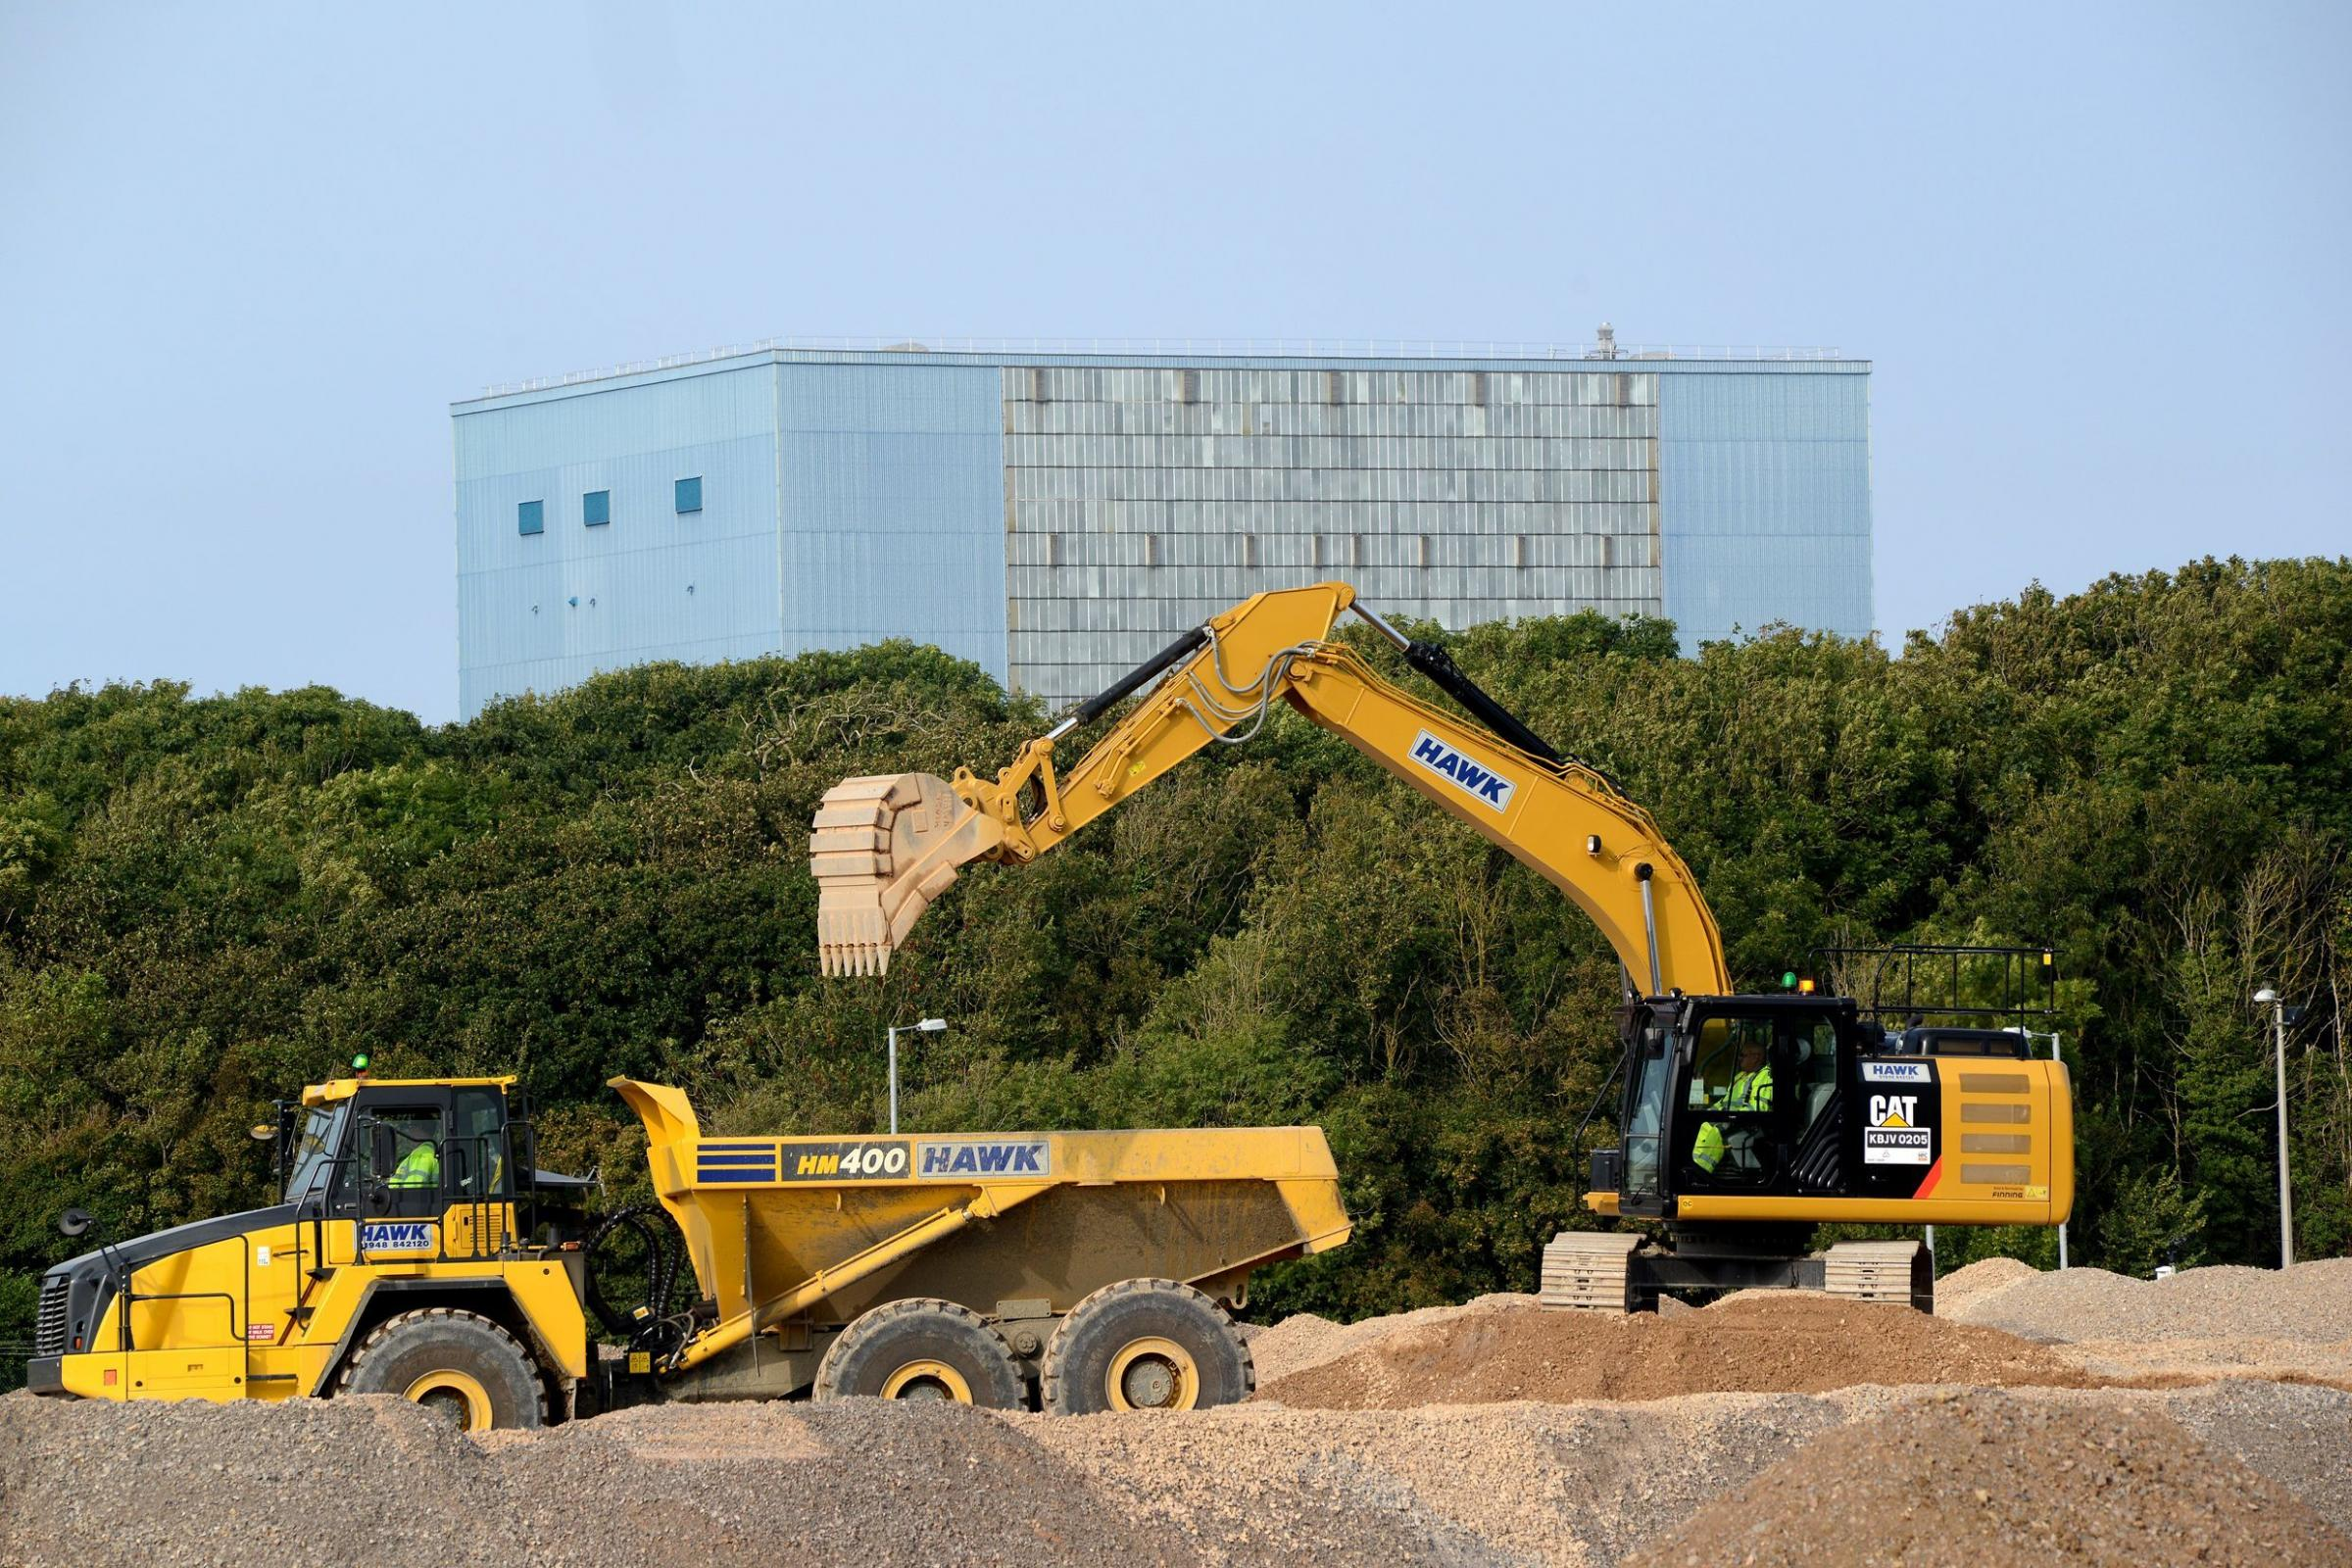 Work on the Site at Hinkley point C has been in full swing